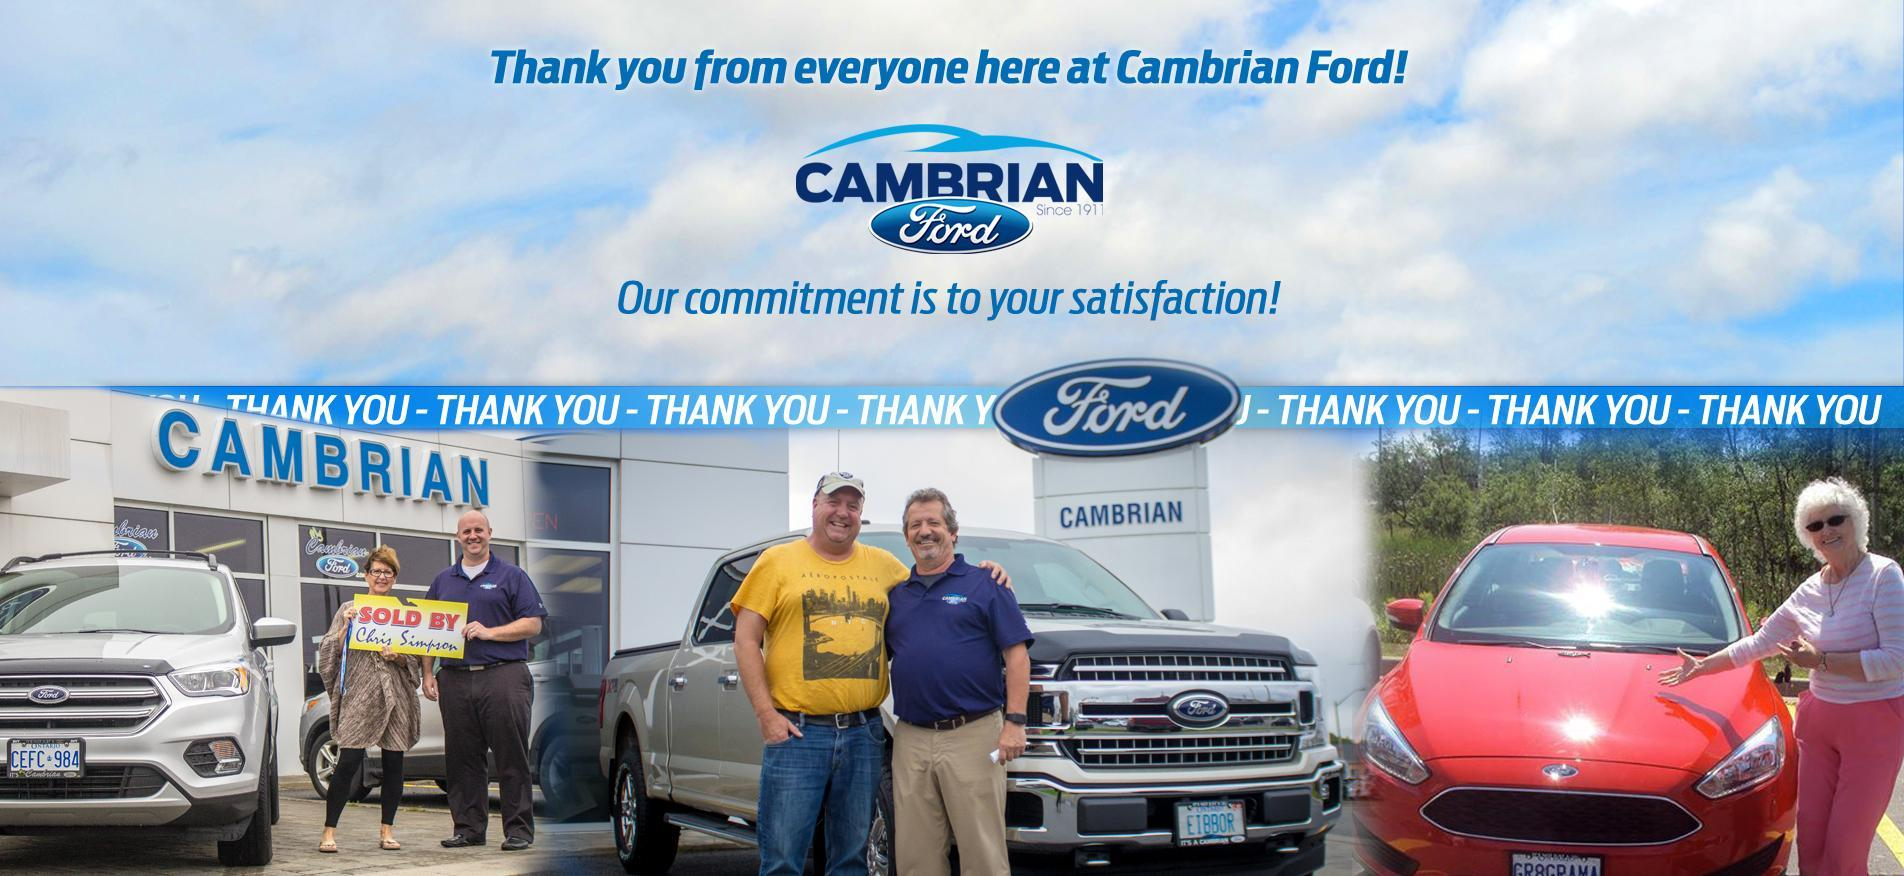 Cambrian Ford Thank you